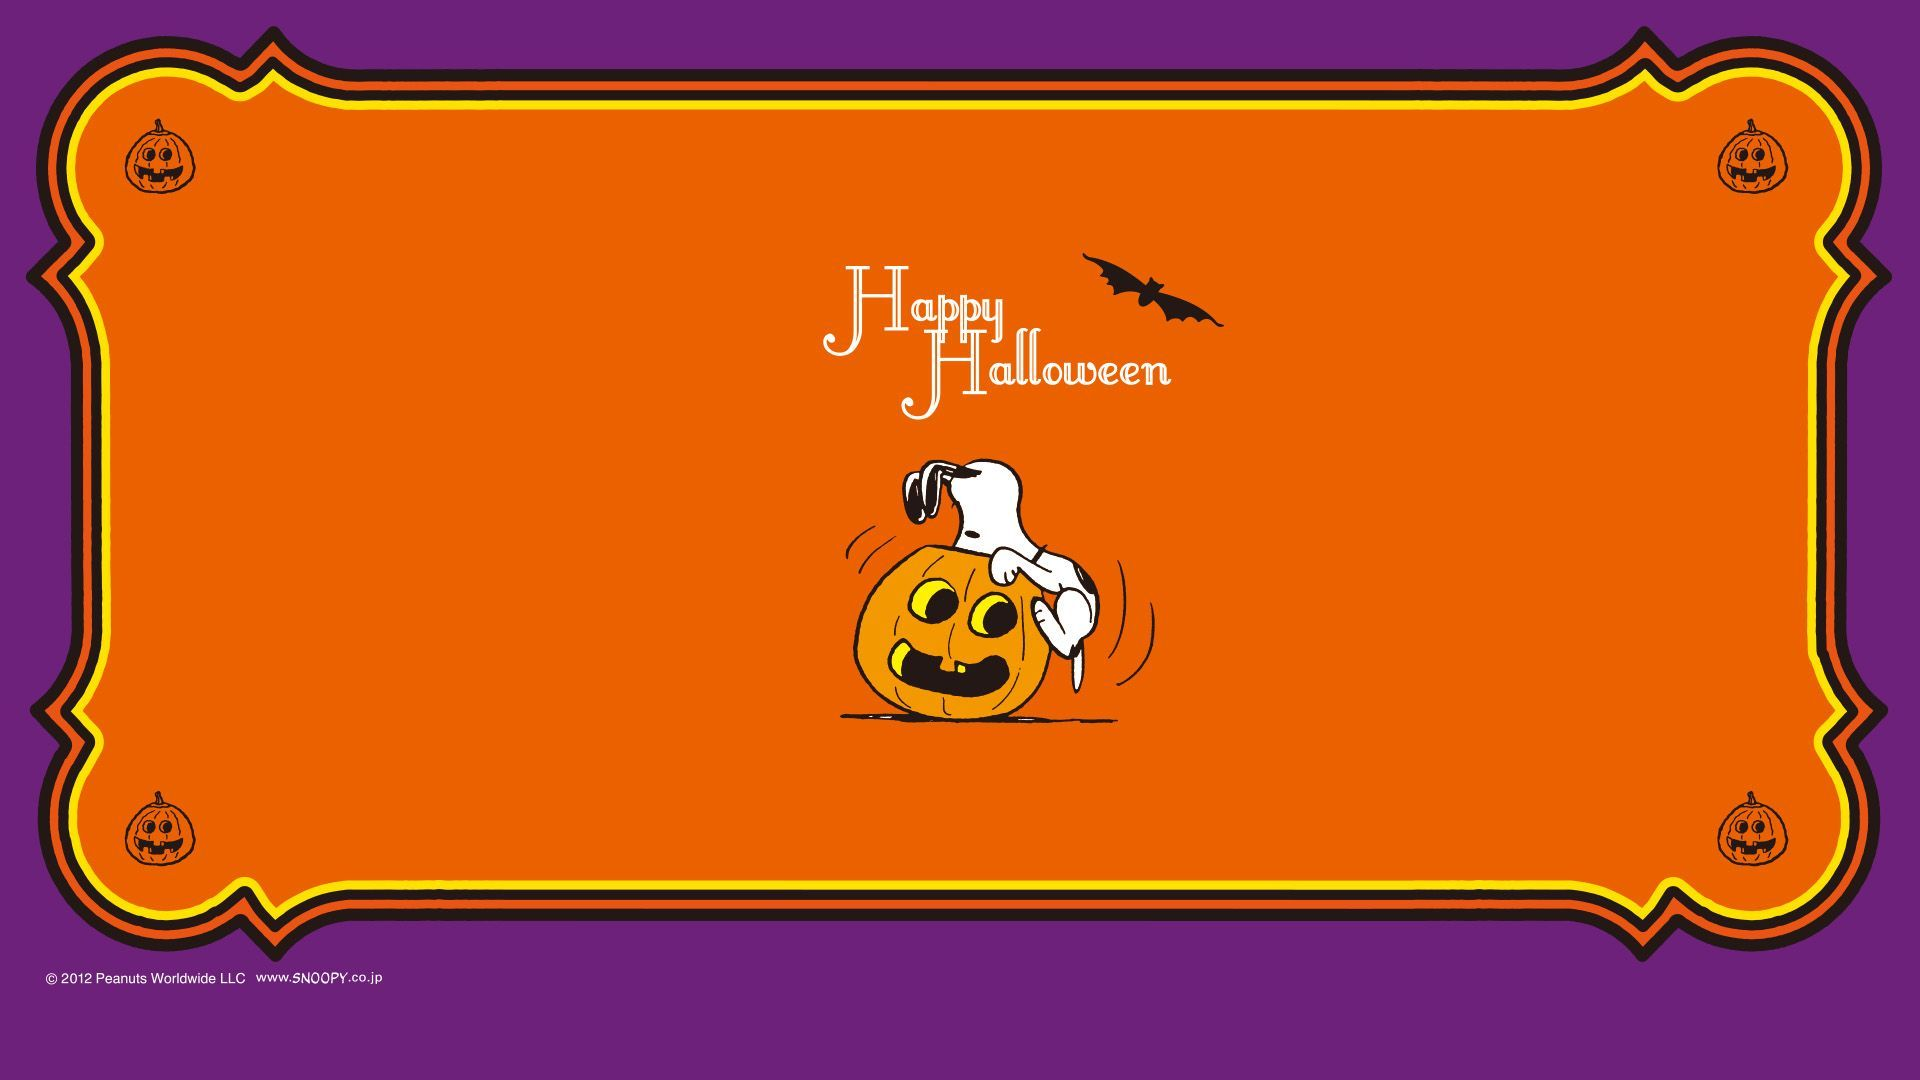 Snoopy Halloween Wallpapers - Wallpaper Cave